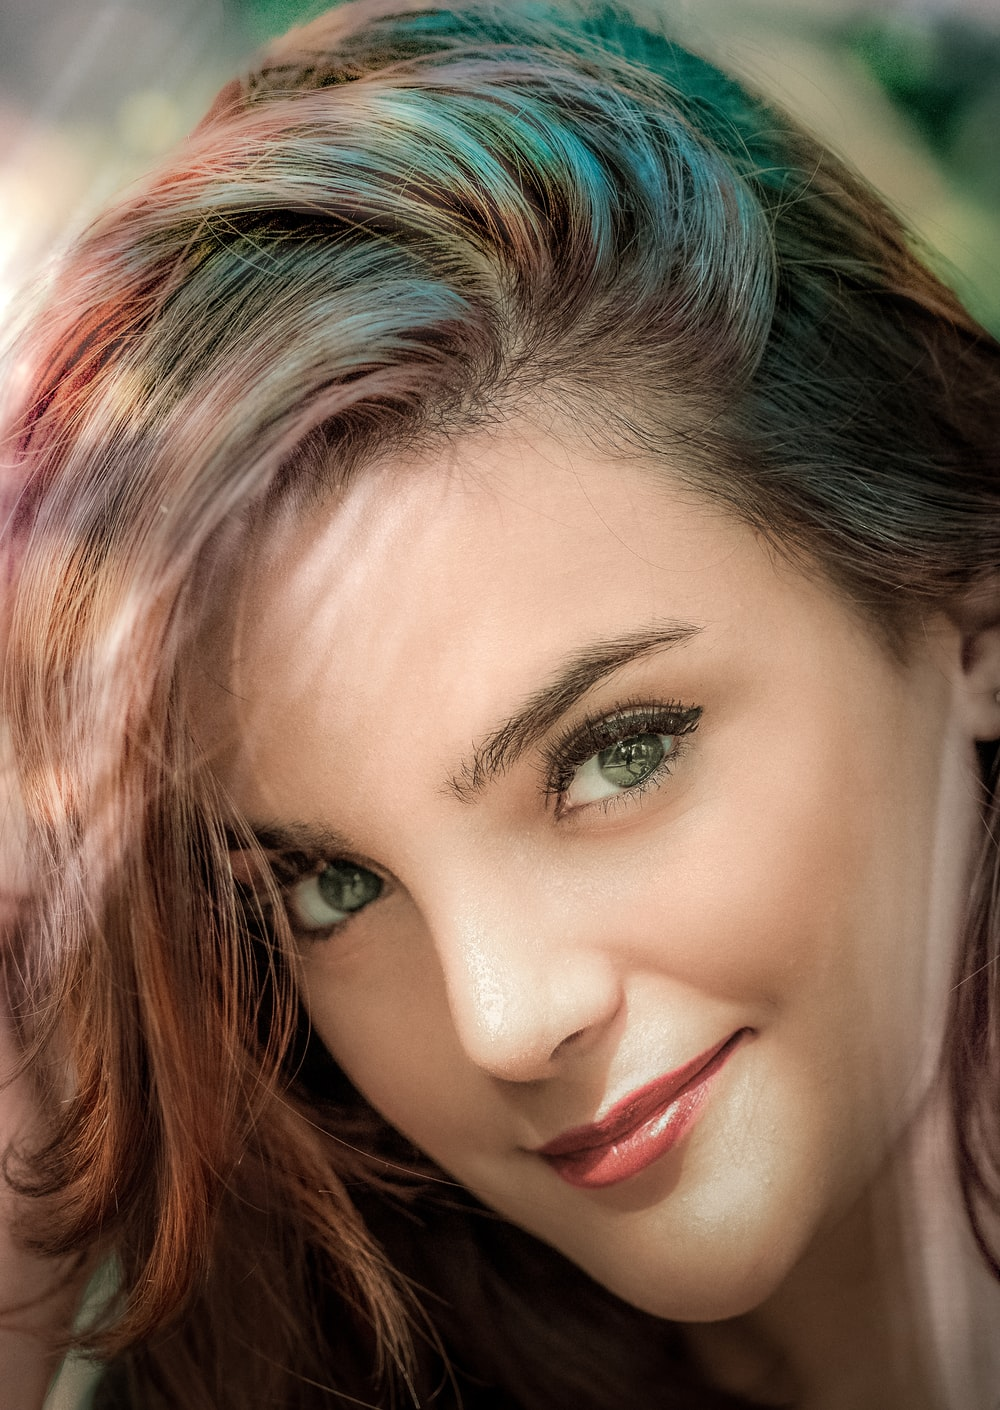 woman with blue eyes and brown hair